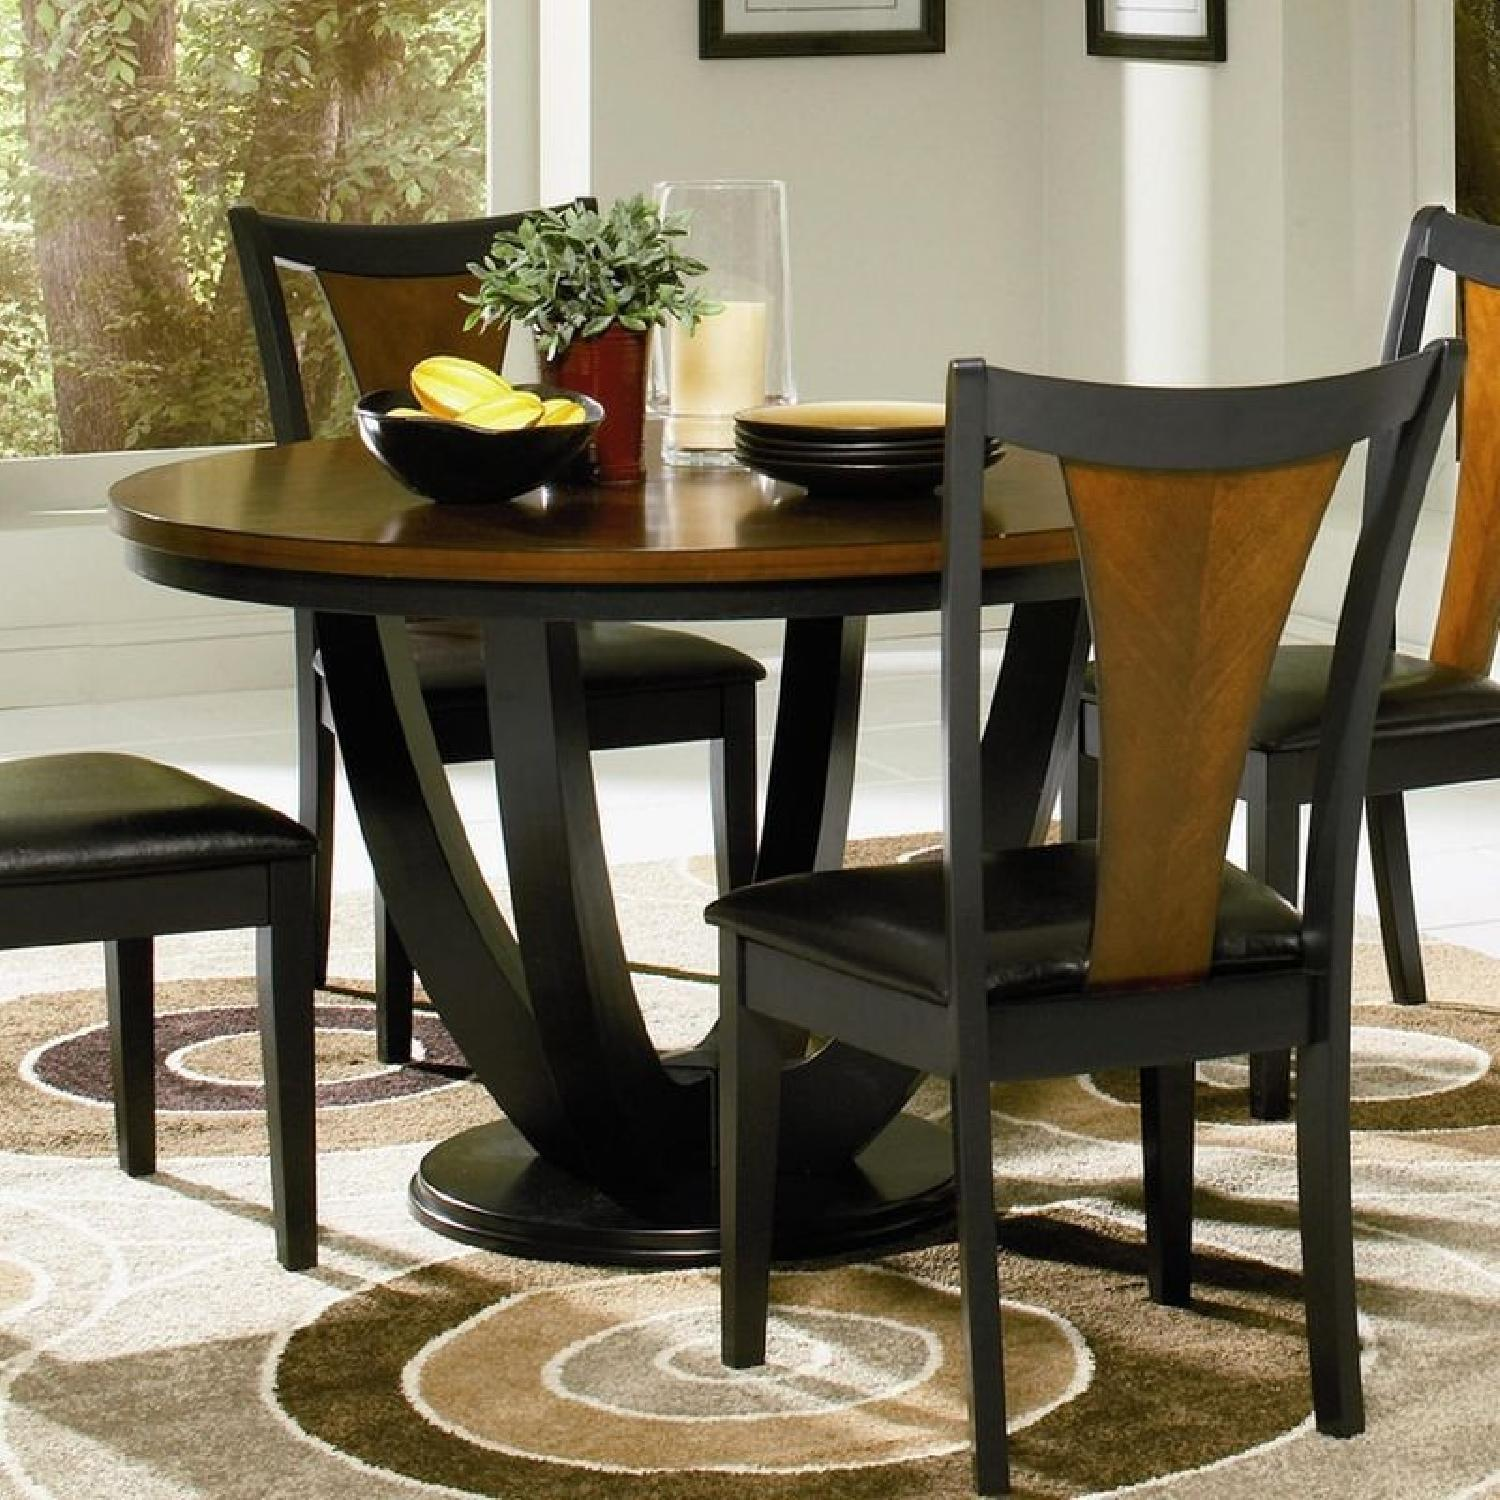 Modern Round Table in Amber w/ Black Base - image-3